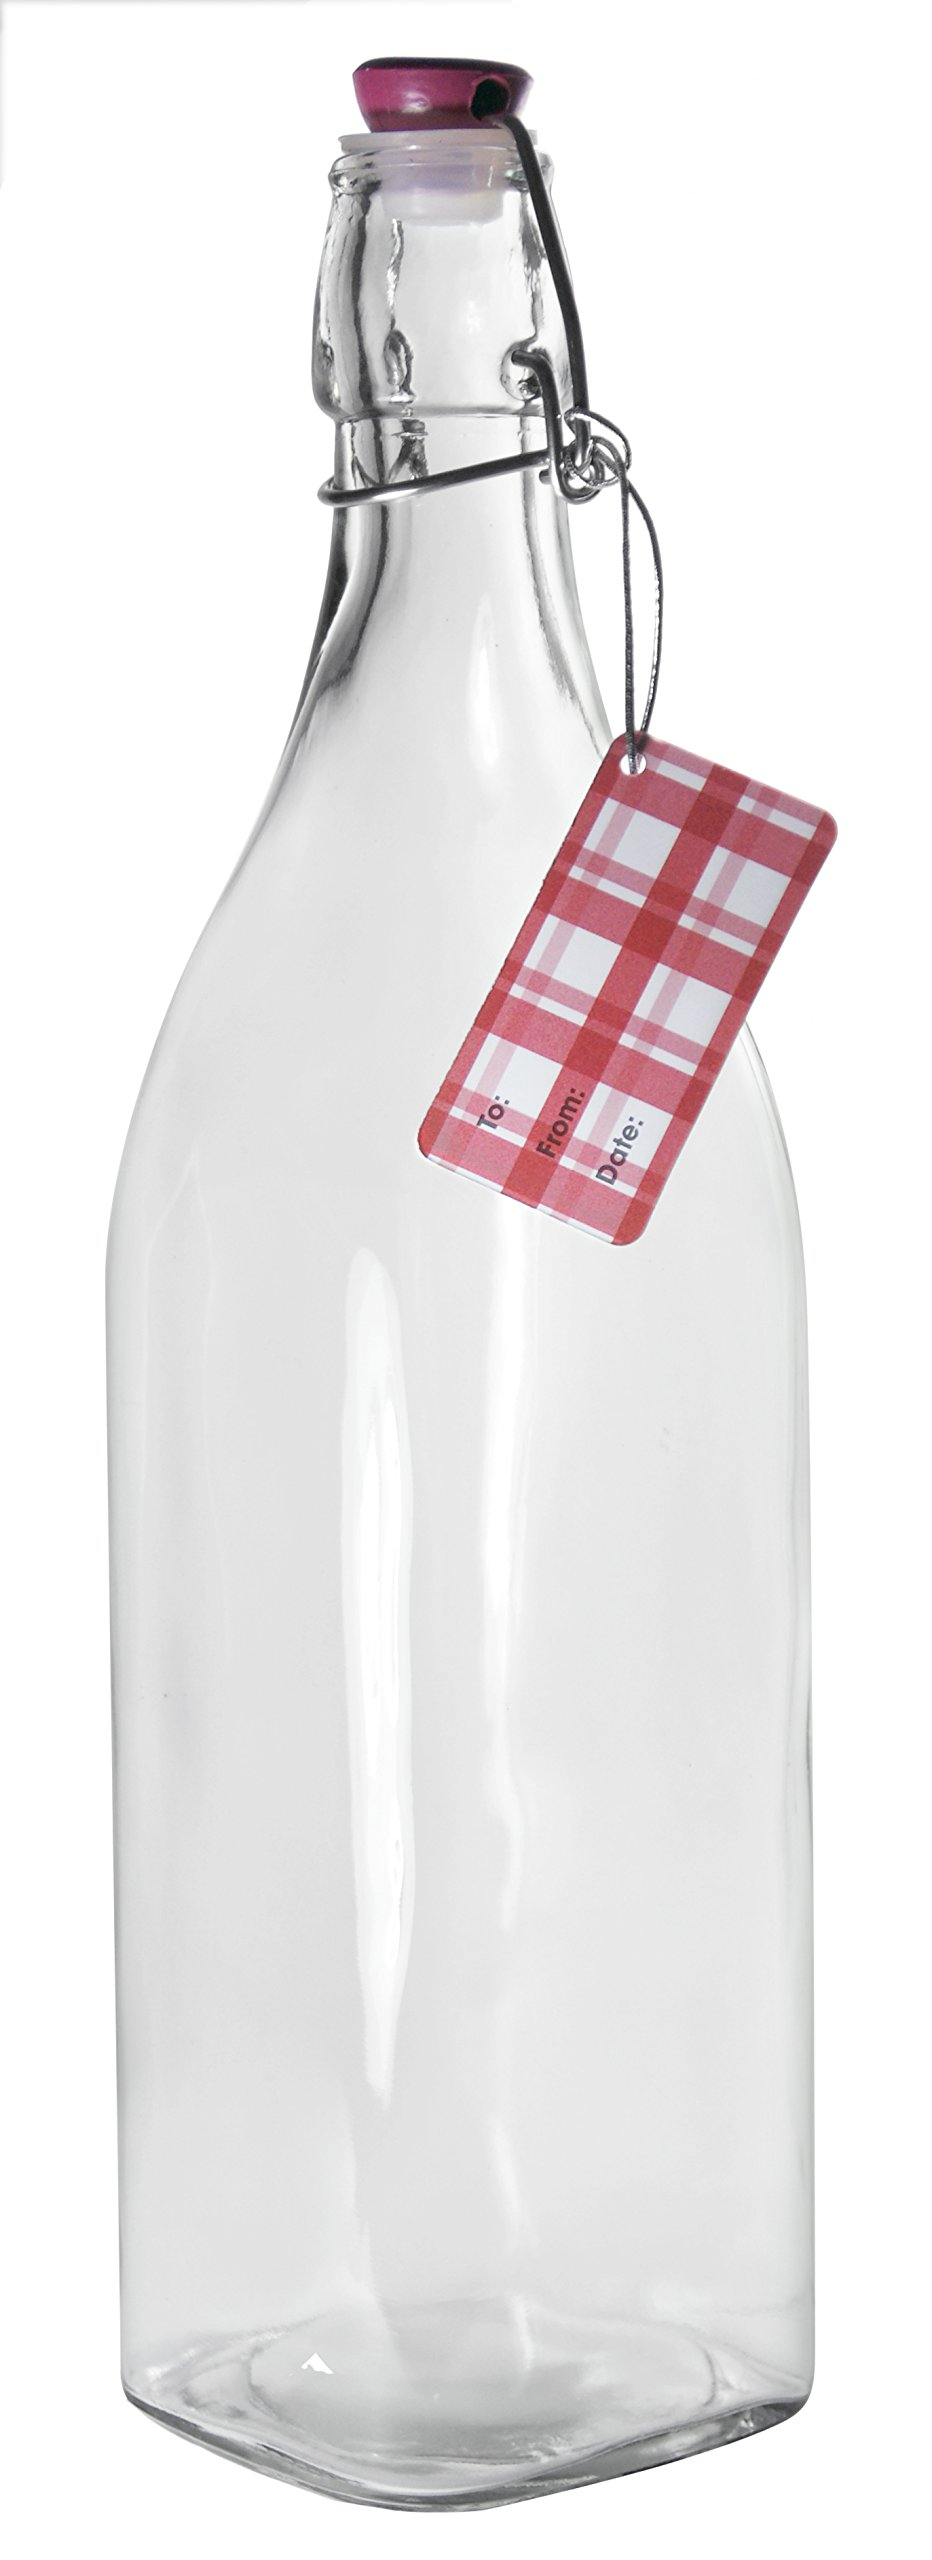 Grant Howard Square Glass Jug with Clip Top, 1 L, Clear